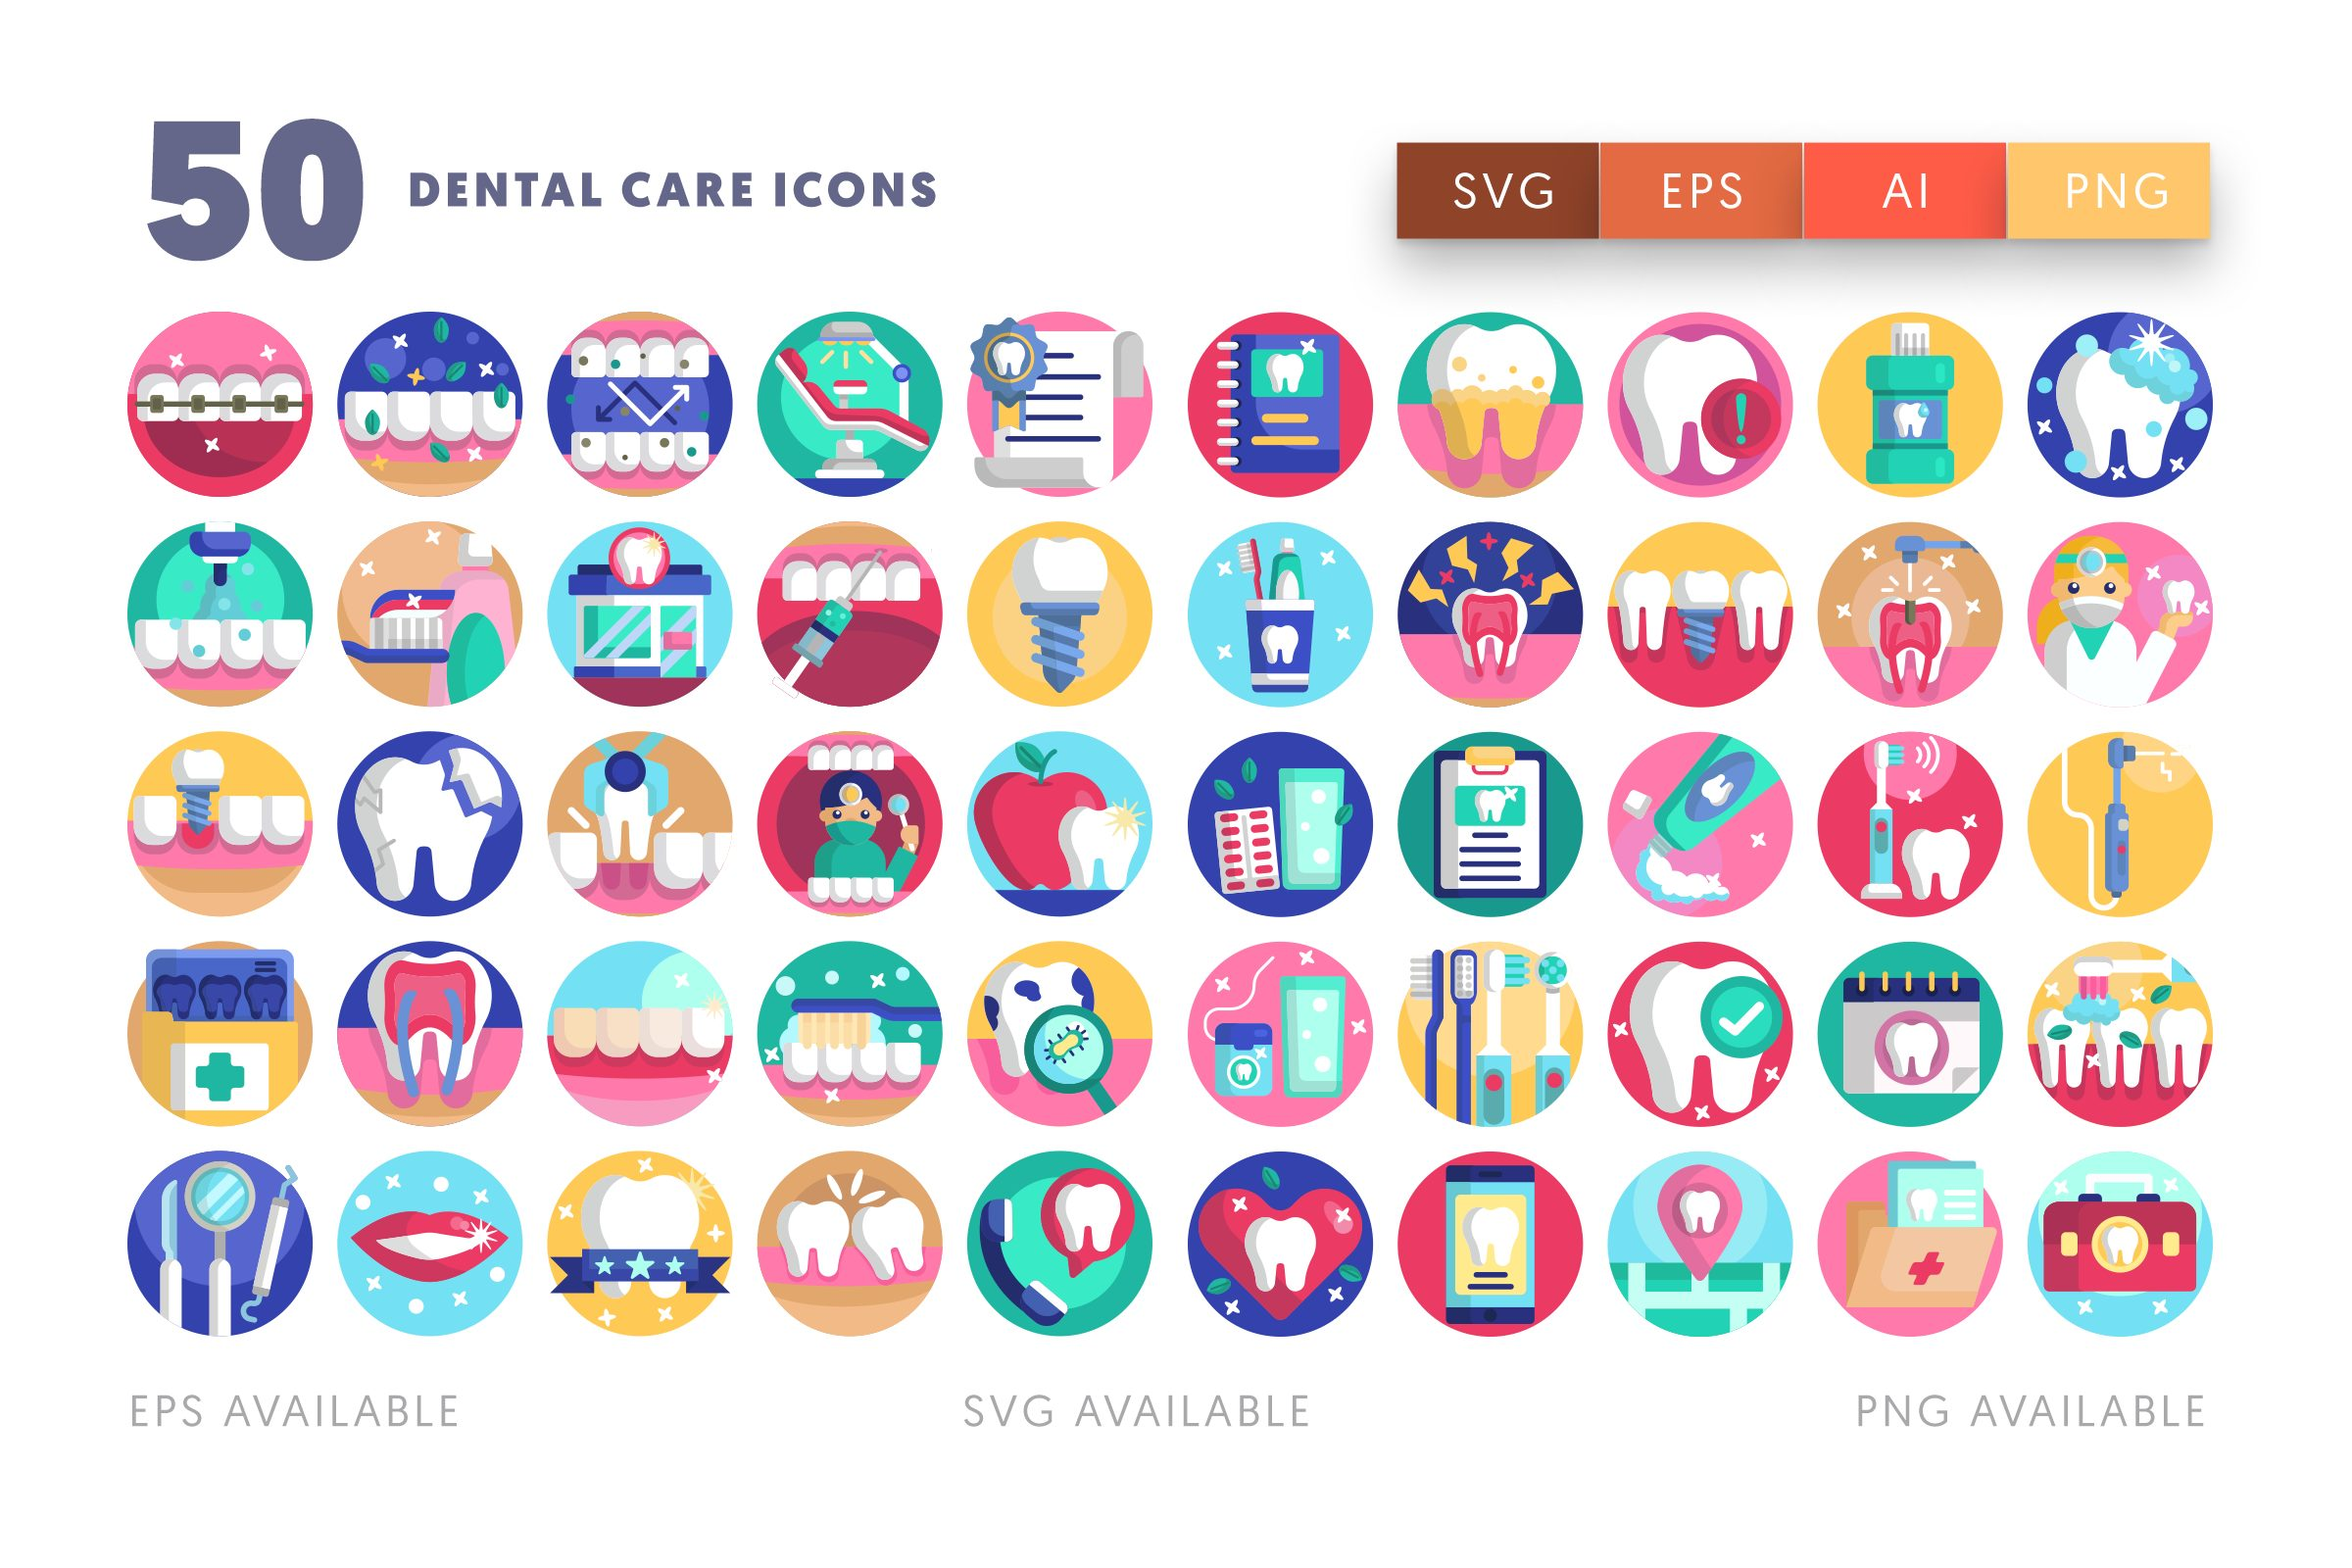 Dental Care icons png/svg/eps